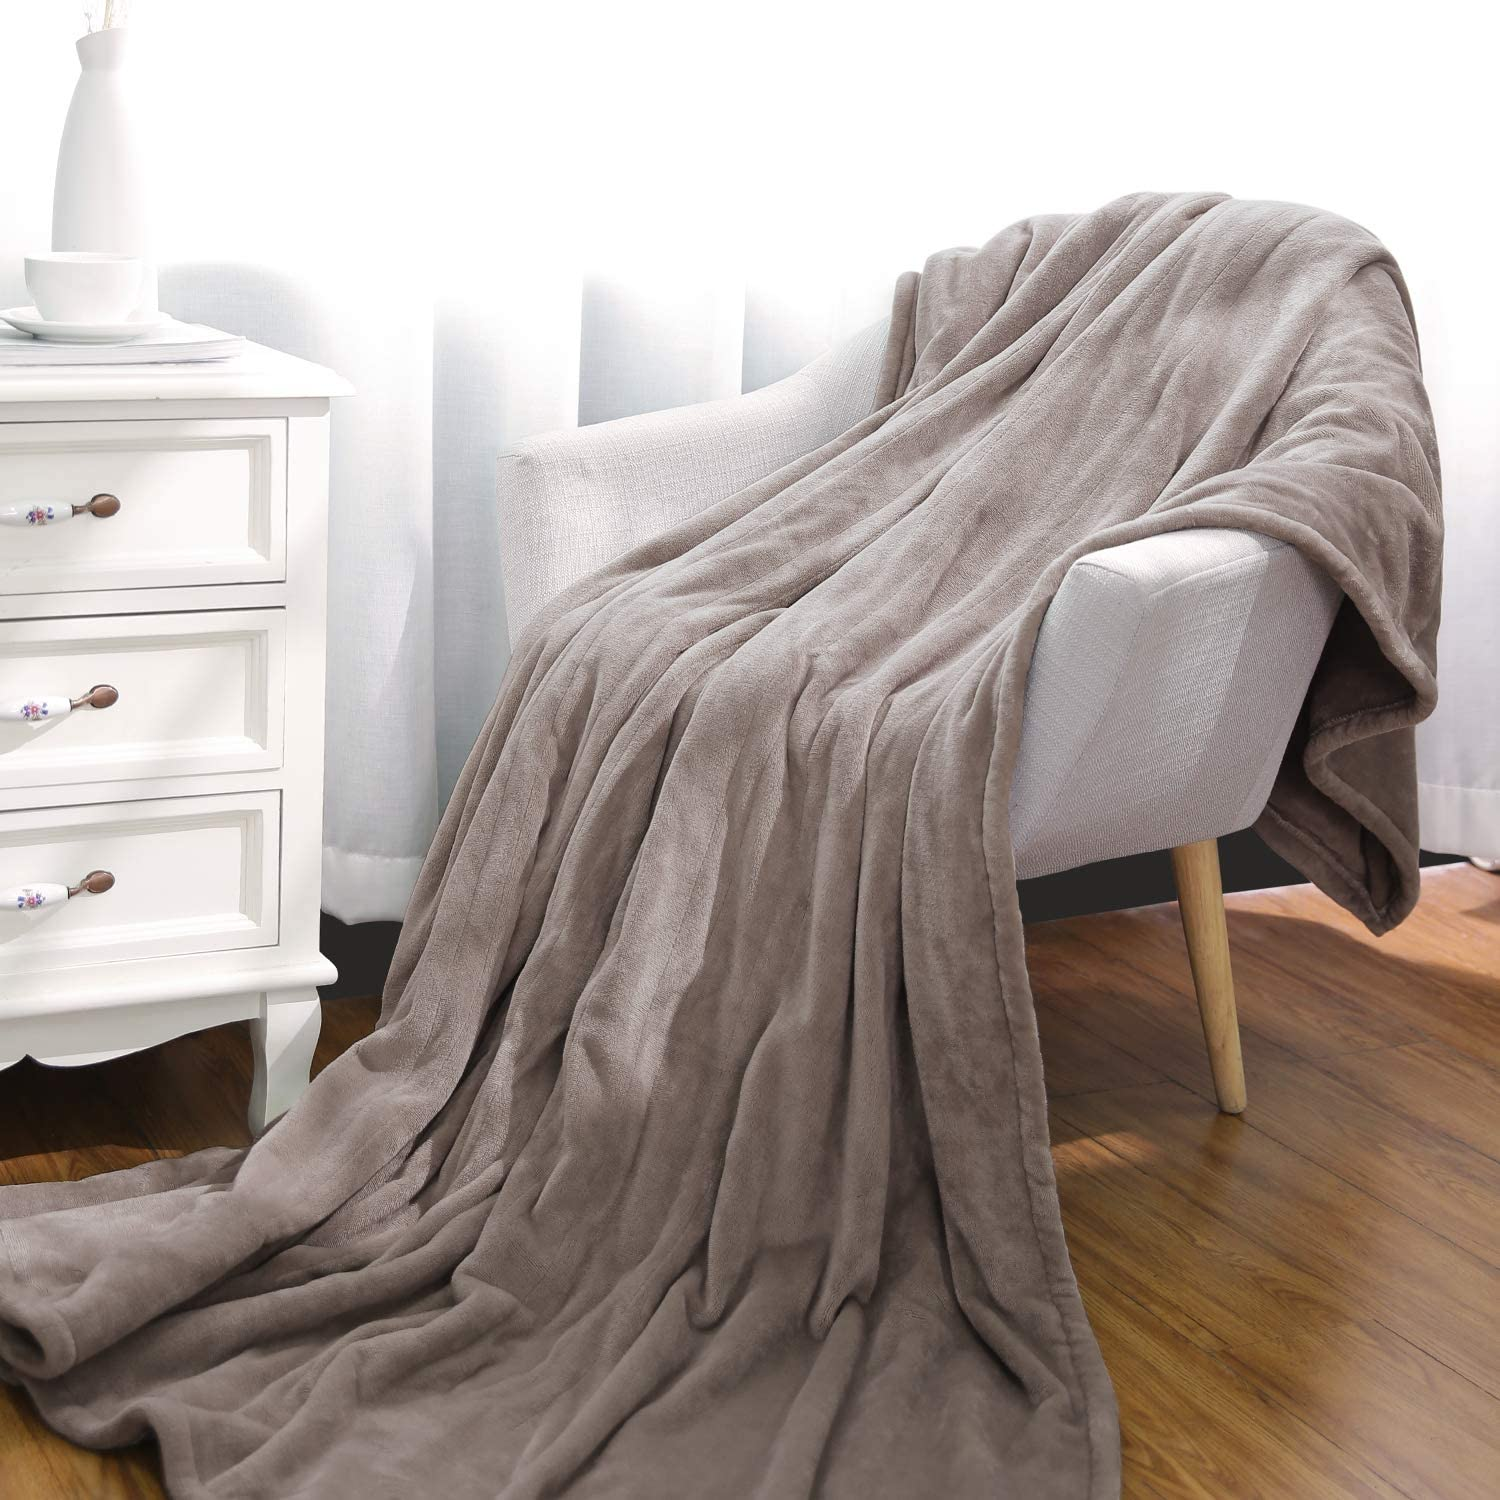 """Electric Blanket 72"""" x 84"""" Oversized Flannel Heated Throw, ETL Certification Fast Heating Blanket with 3 Heating Levels & 8 Hours Auto Off, Machine Washable"""